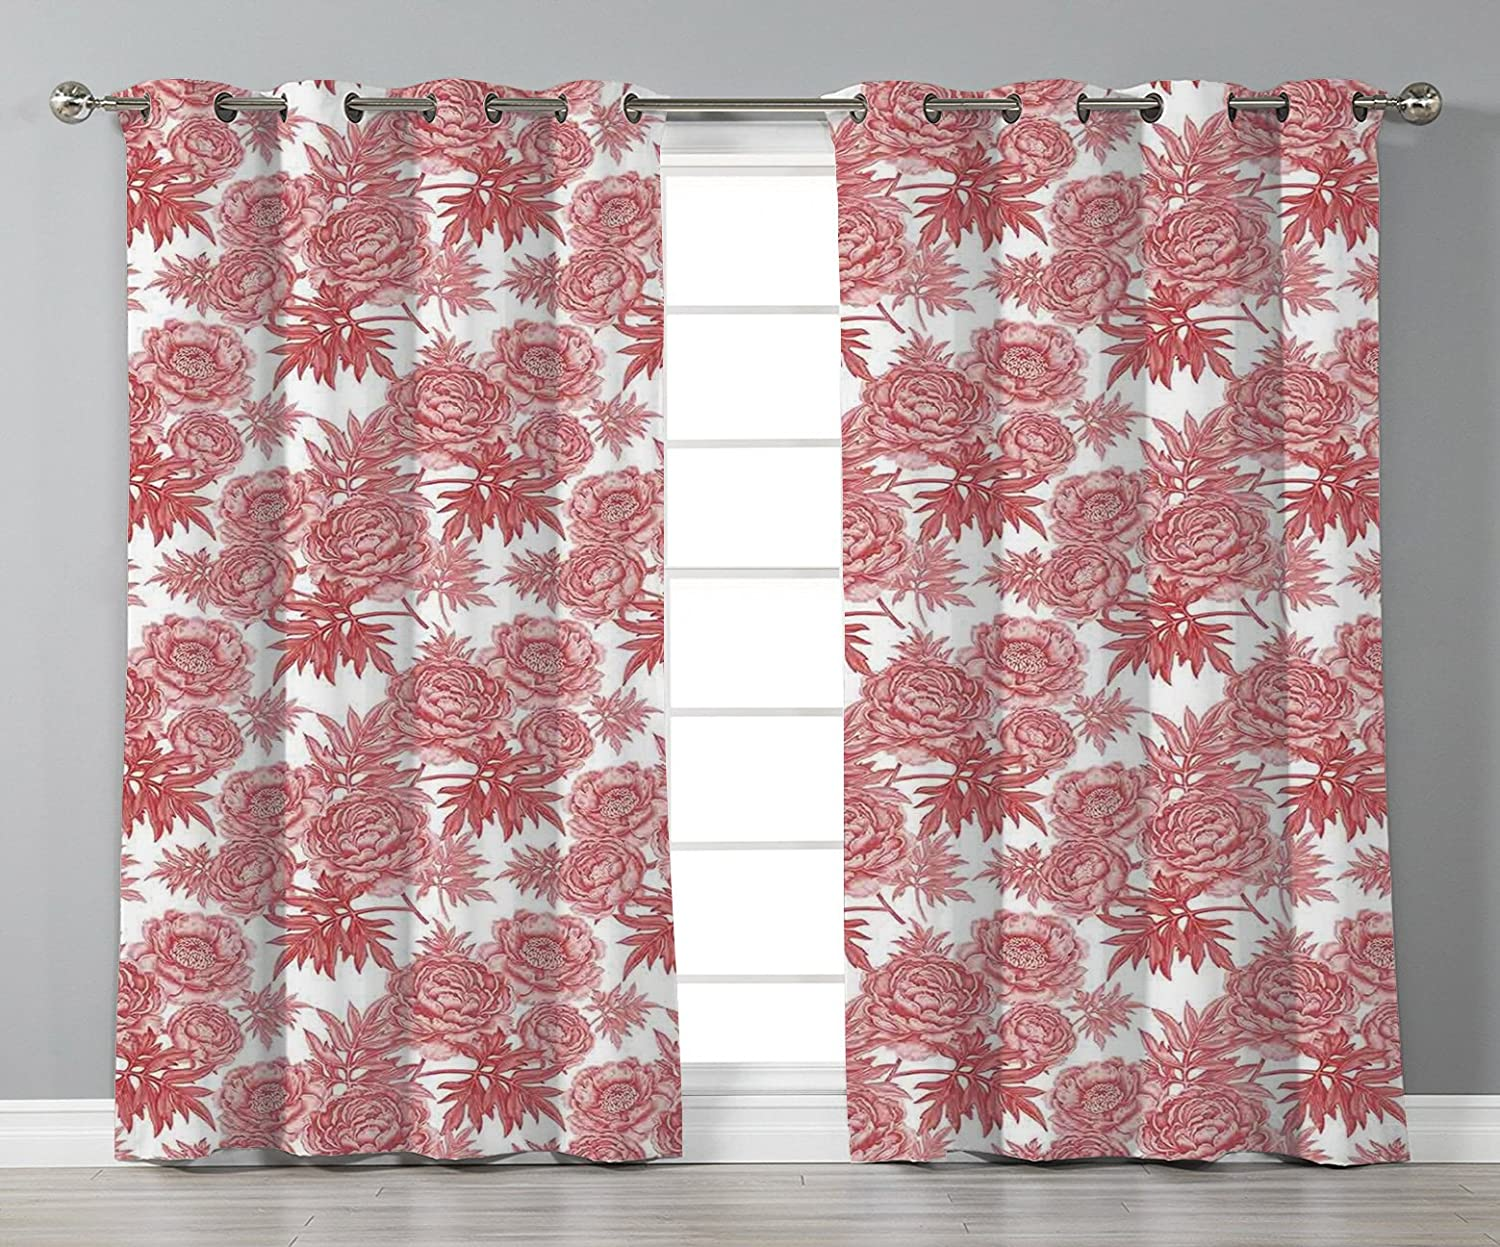 Thermal Insulated Blackout Grommet Window Curtains,Victorian Decor,Vibrant Vivid Color Garden Flower and Peonies Bouquet Illustration Old England Style,White Red,2 Panel Set Window Drapes,for Living R